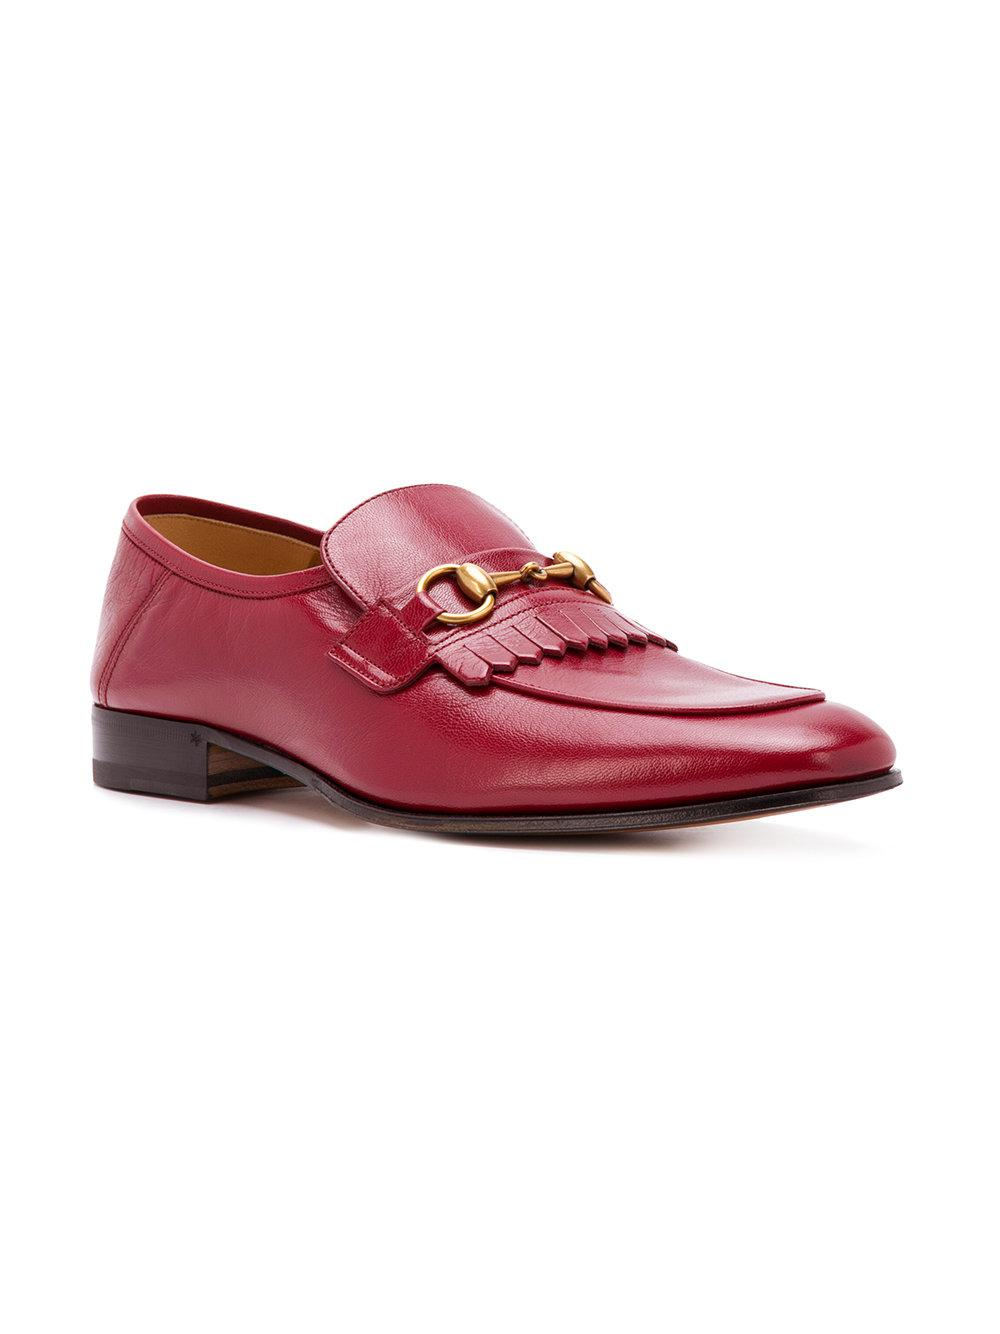 3de072e3118 Lyst - Gucci Horsebit Loafers in Red for Men